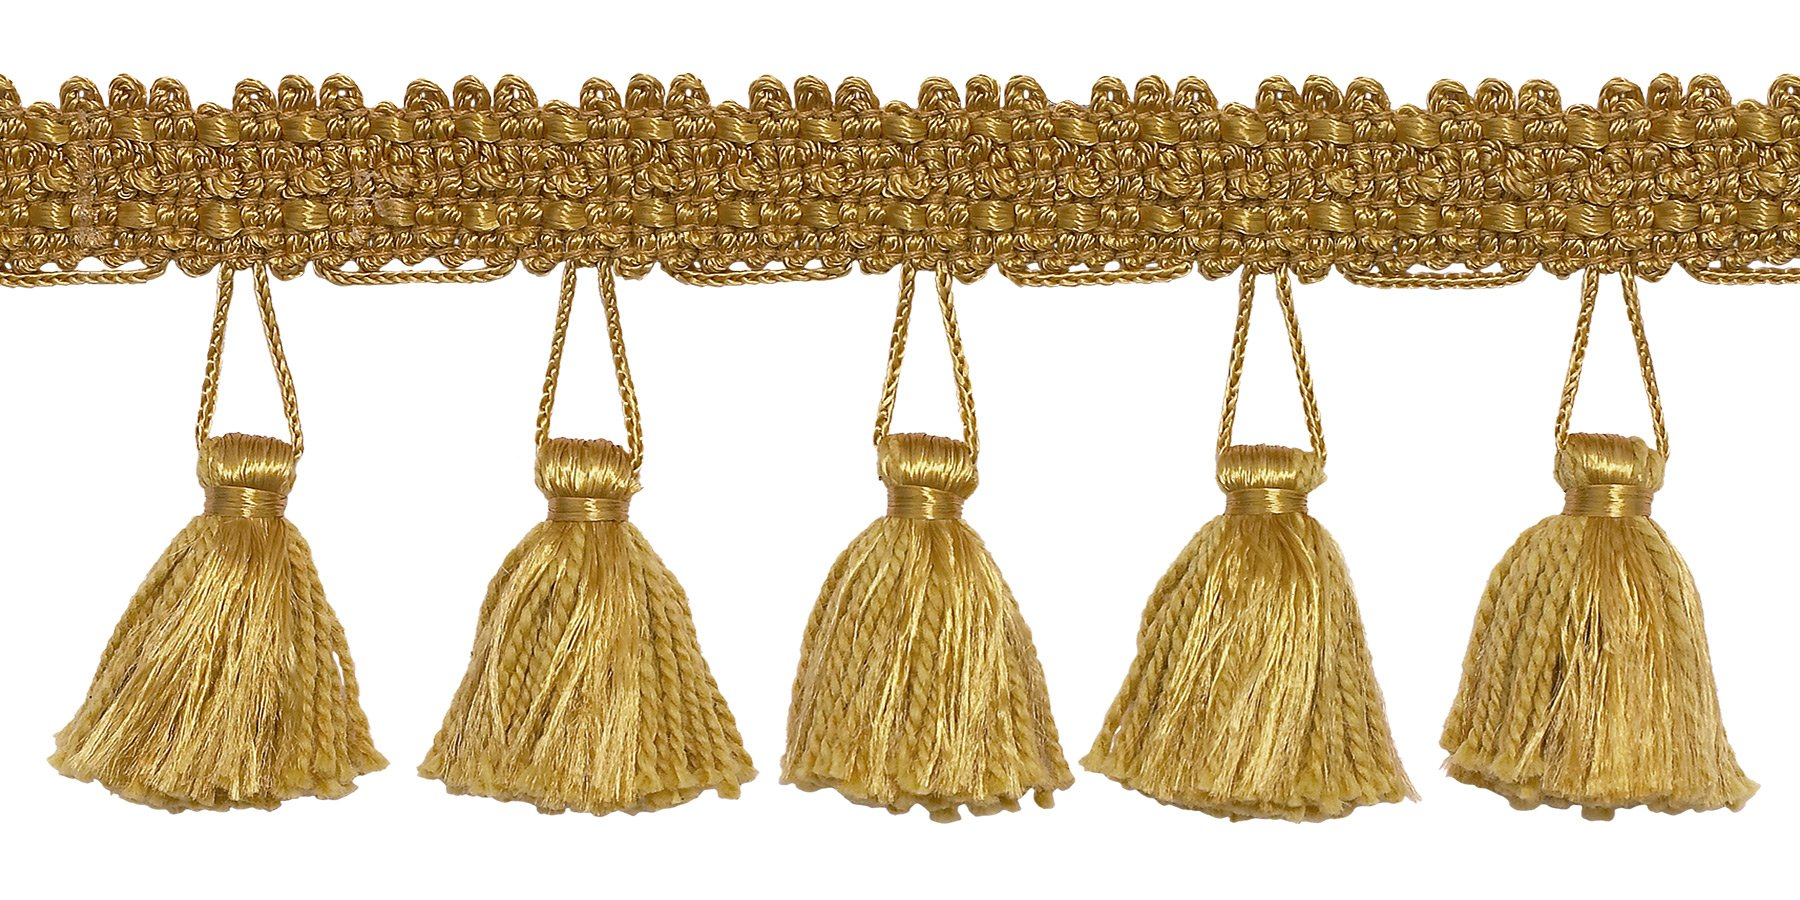 DÉCOPRO 10 Yard Value Pack of 2.5 Inch Tassel Fringe Trim, Style# ETF Color: Gold - C4 (30 Ft / 9.1 Meters) by DÉCOPRO